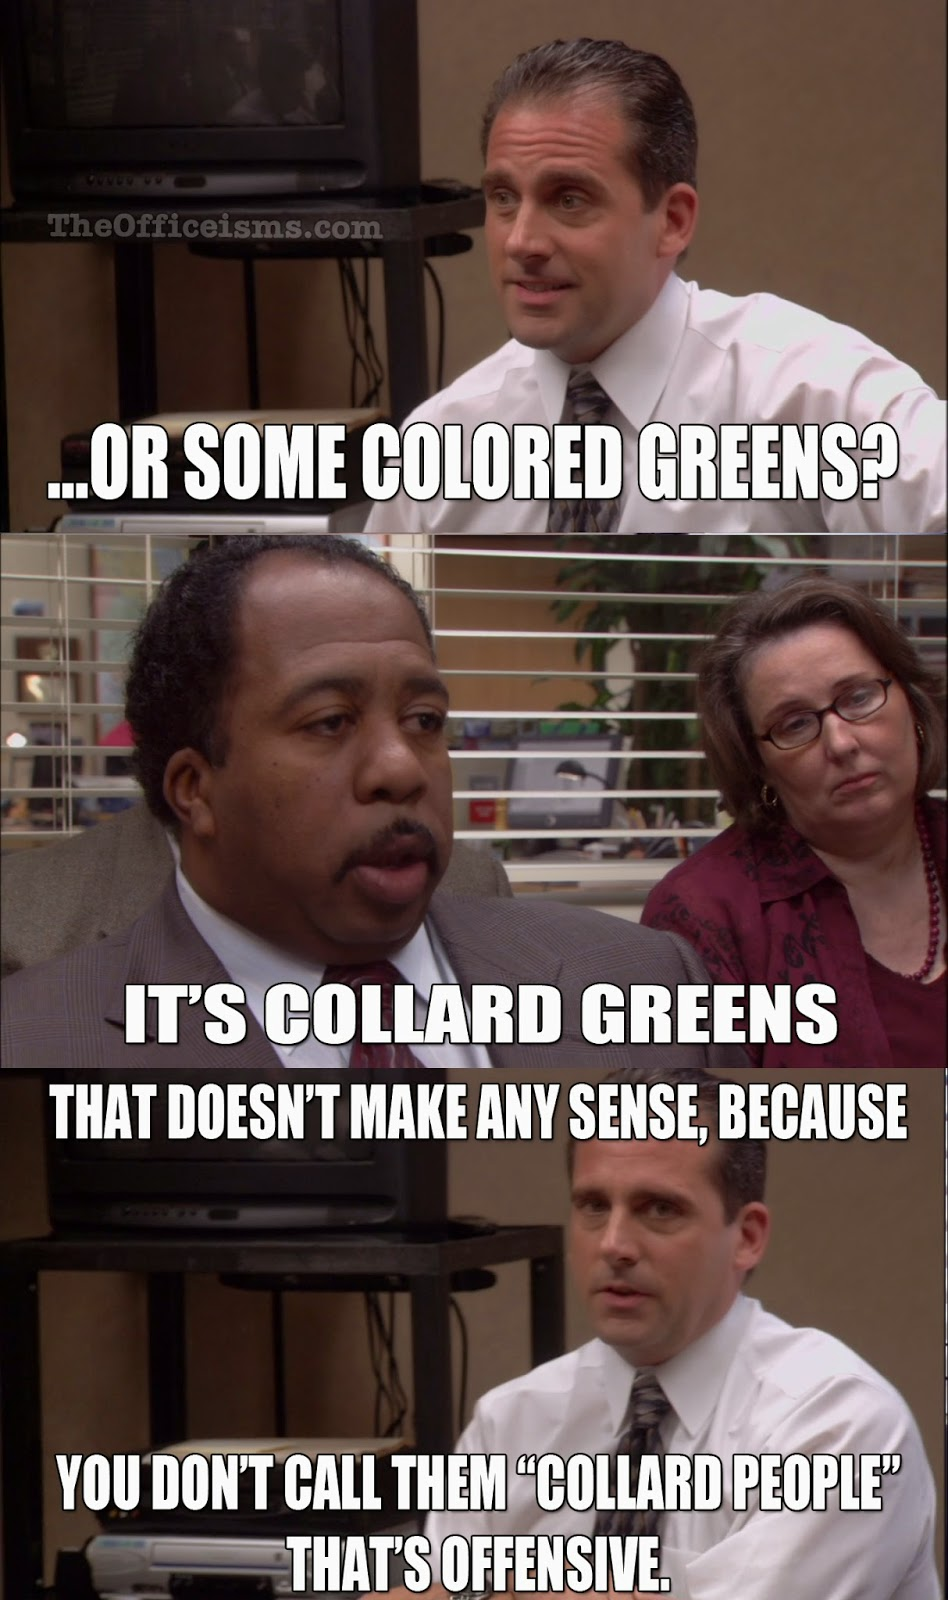 Offensive Quotes The Officeisms Michael Scott Memes